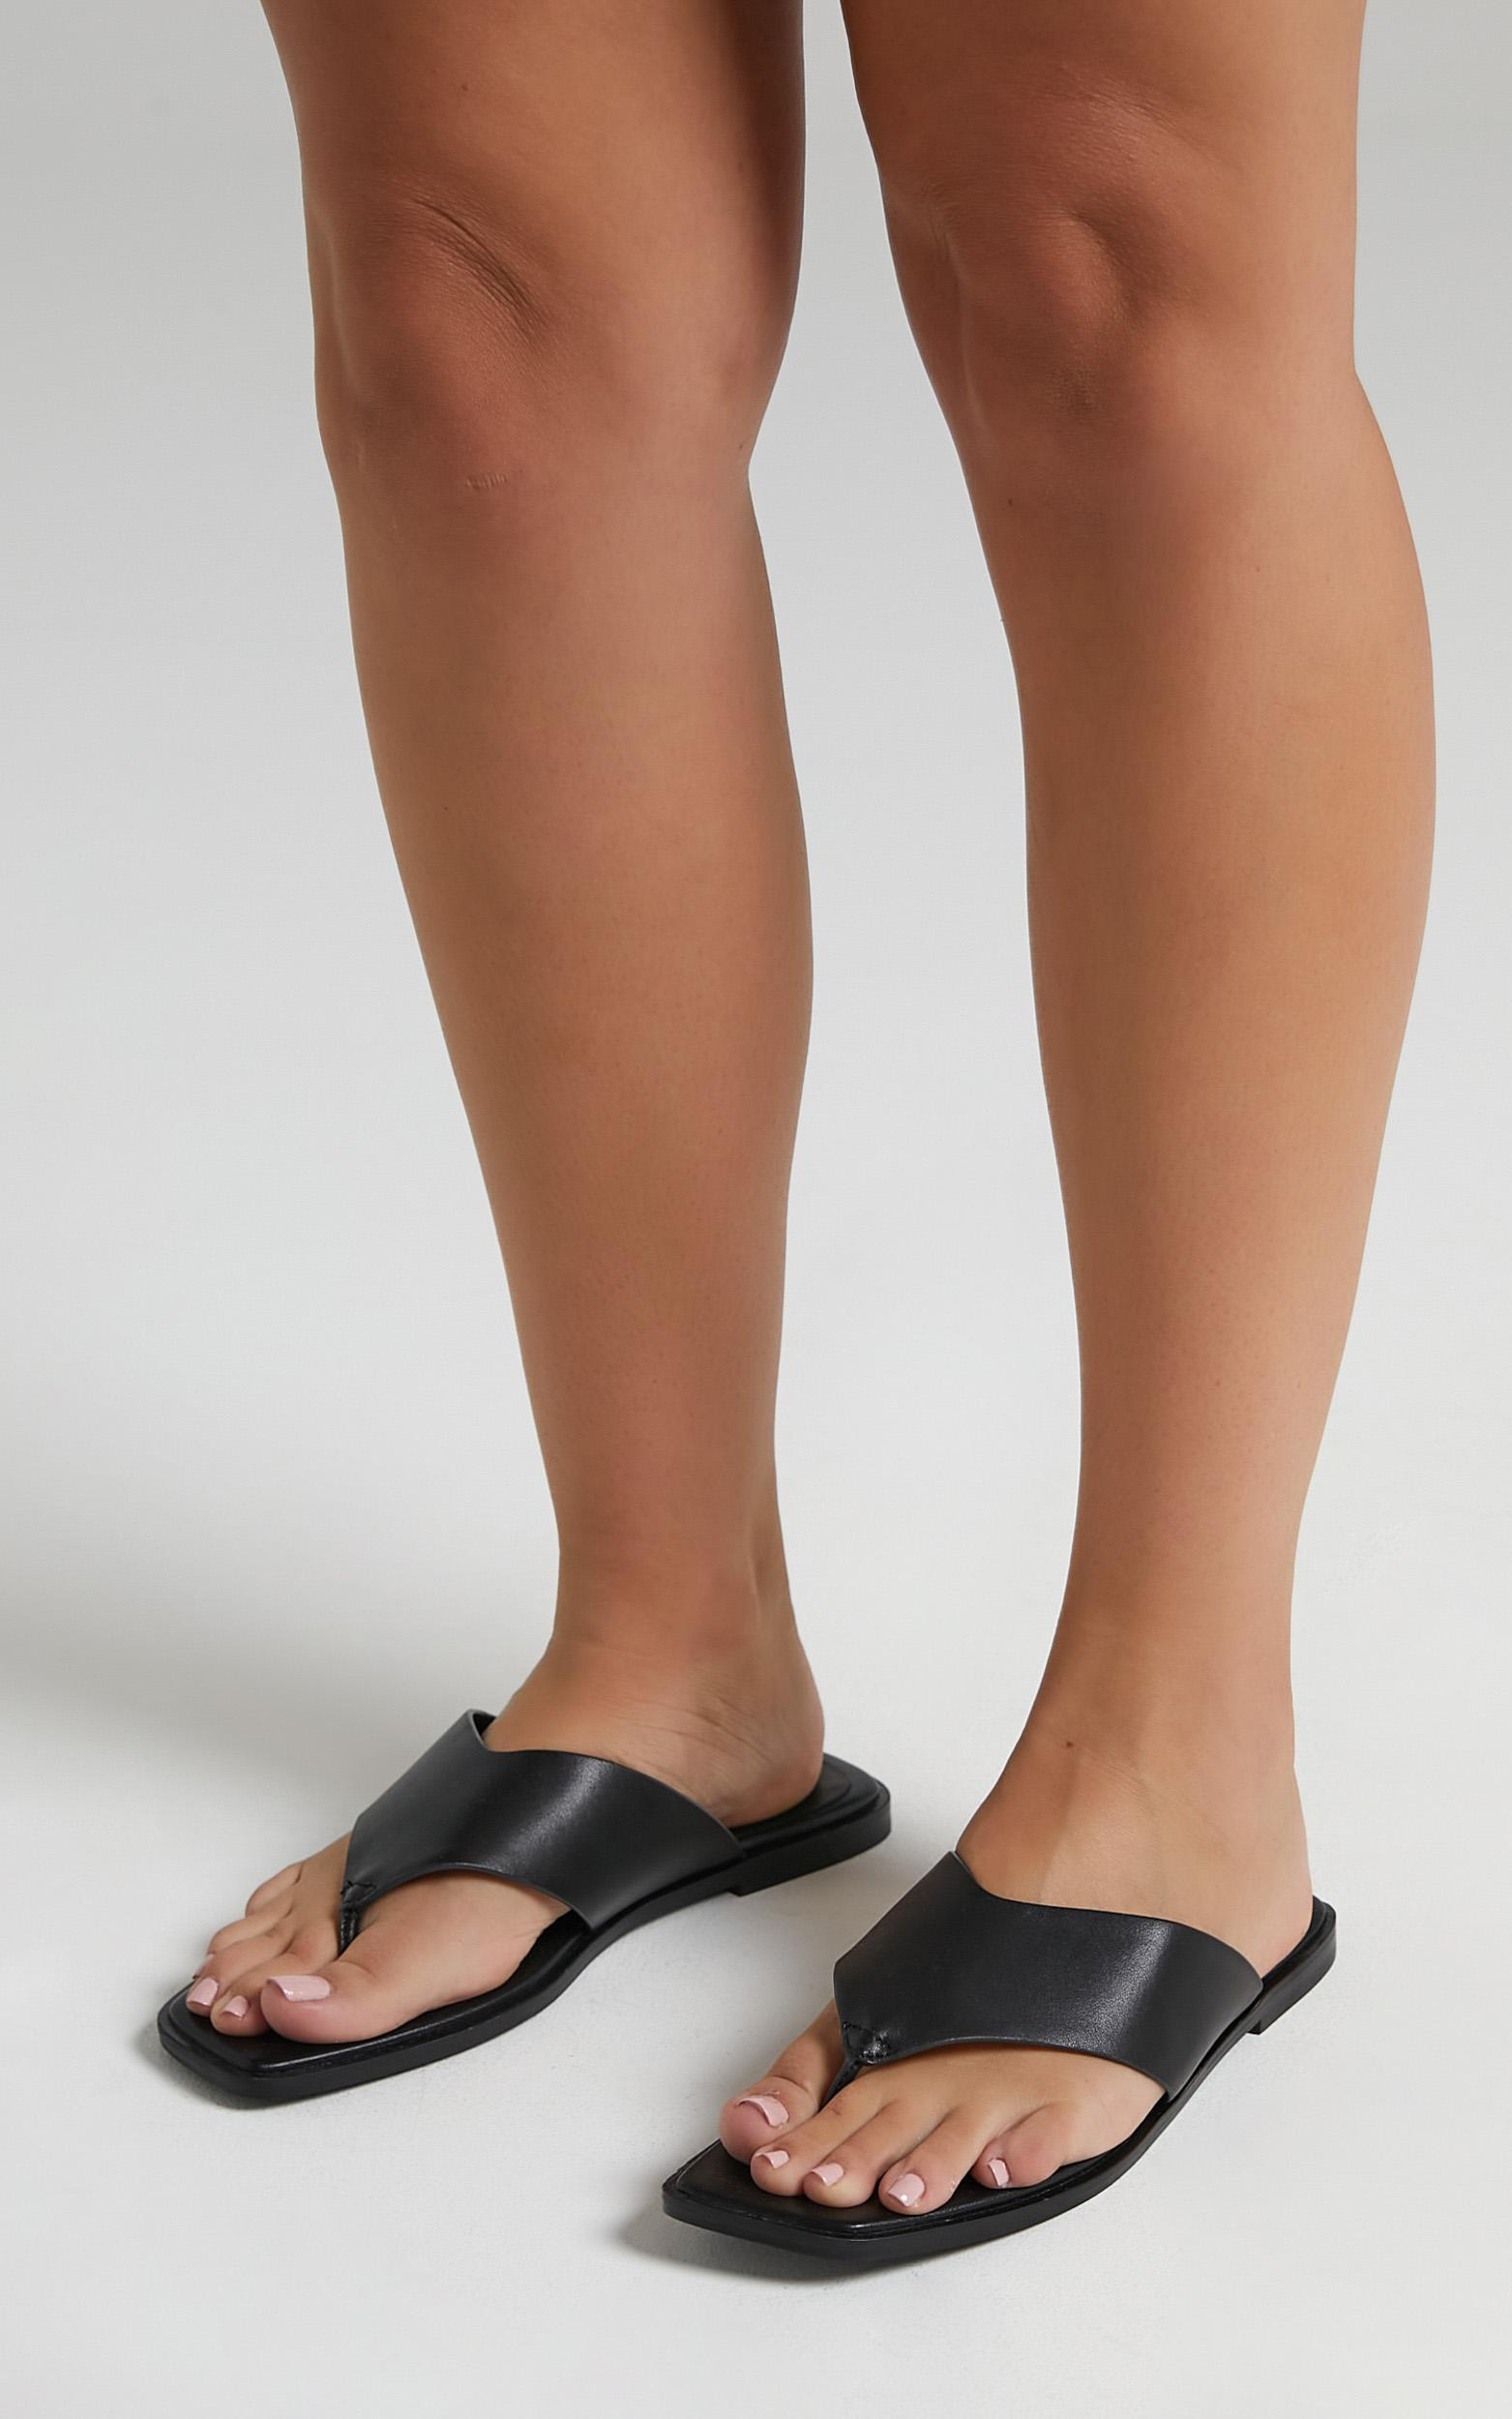 Alias Mae - Tuesday Sandals in Black Kid Leather - 5.5, Black, hi-res image number null